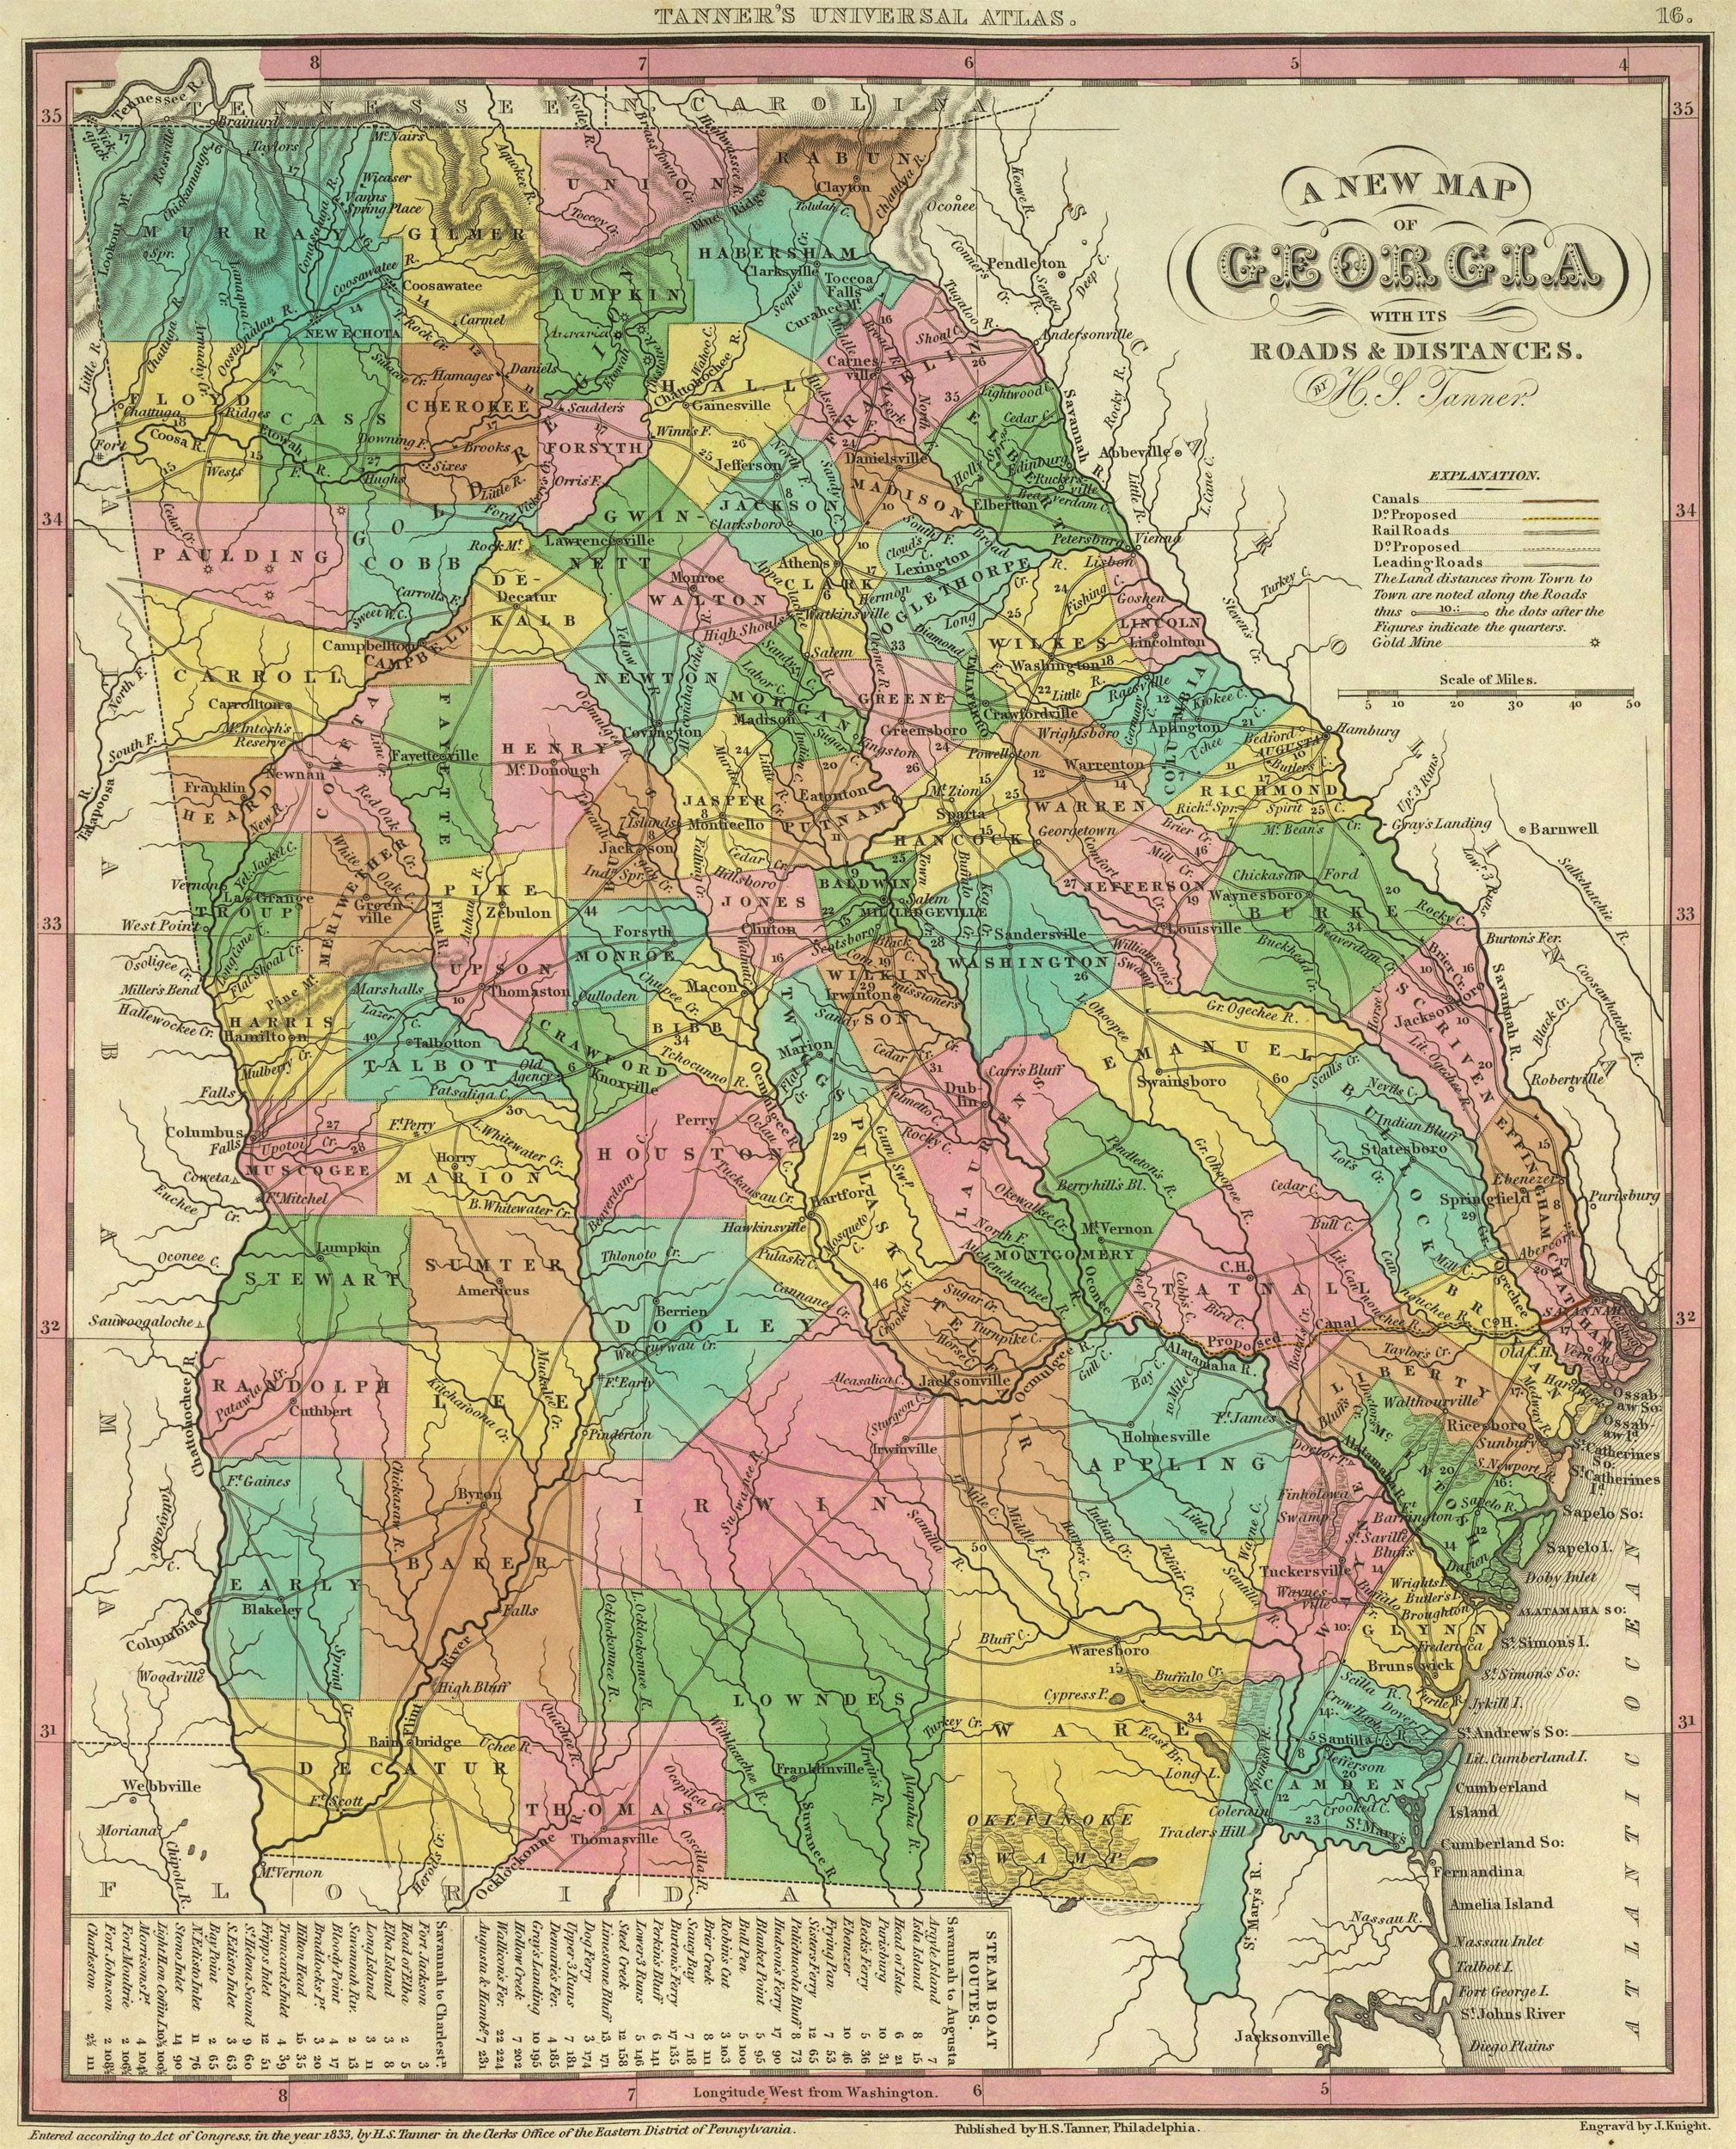 Colonial Map Of Georgia.1836 Map Of Georgia With Its Roads And Distances Heritage